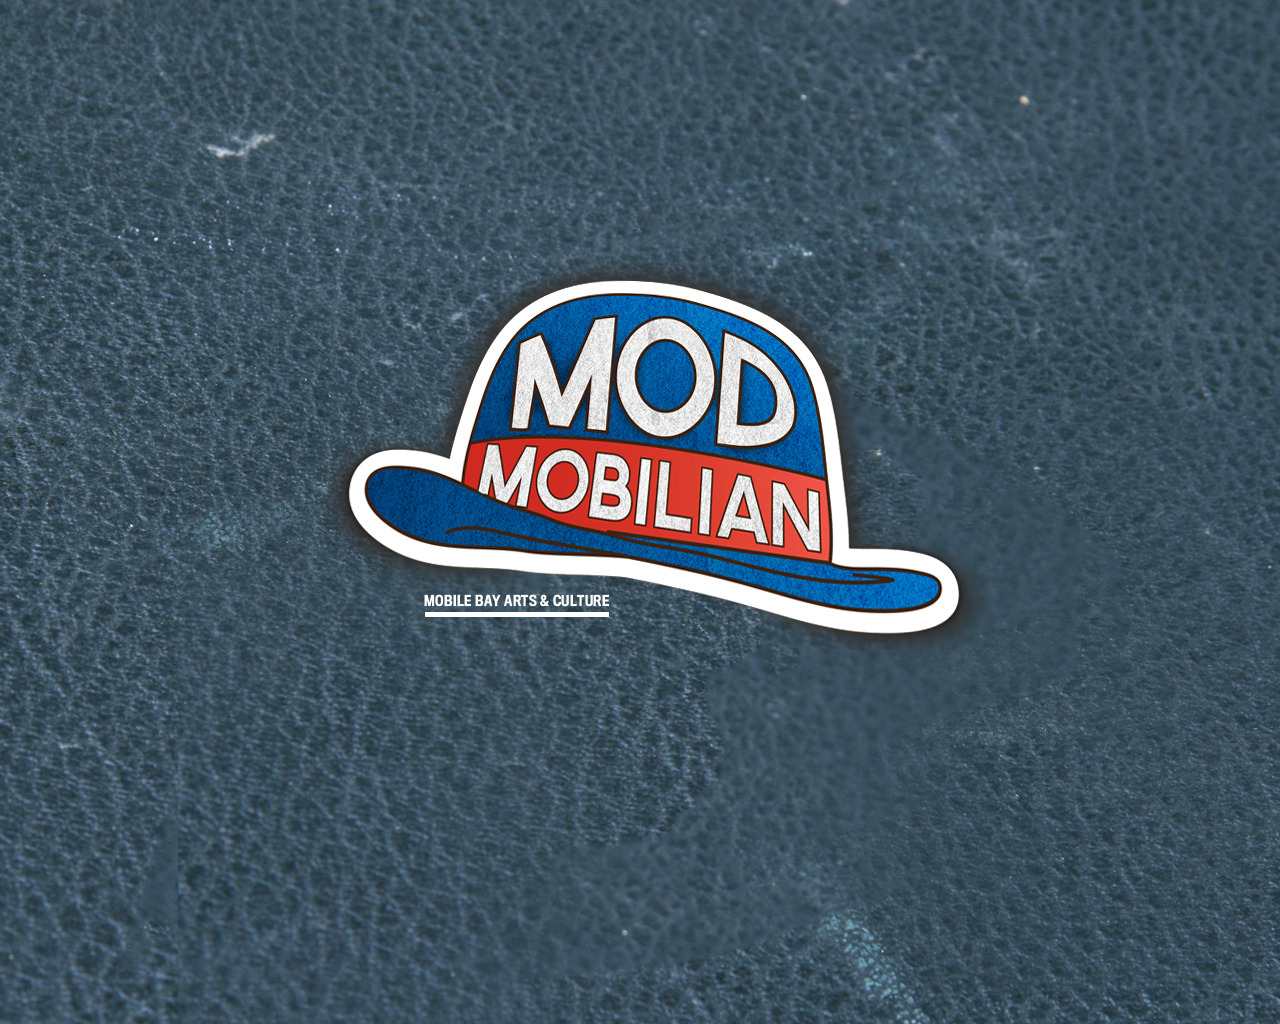 Entered a logo for my friends who run a local arts magazine called Mod Mobilian. They pretty much do everything from blogs, short films, reviews, and journalism. Please take a a second and give them a looksee! www.modmobilian.com